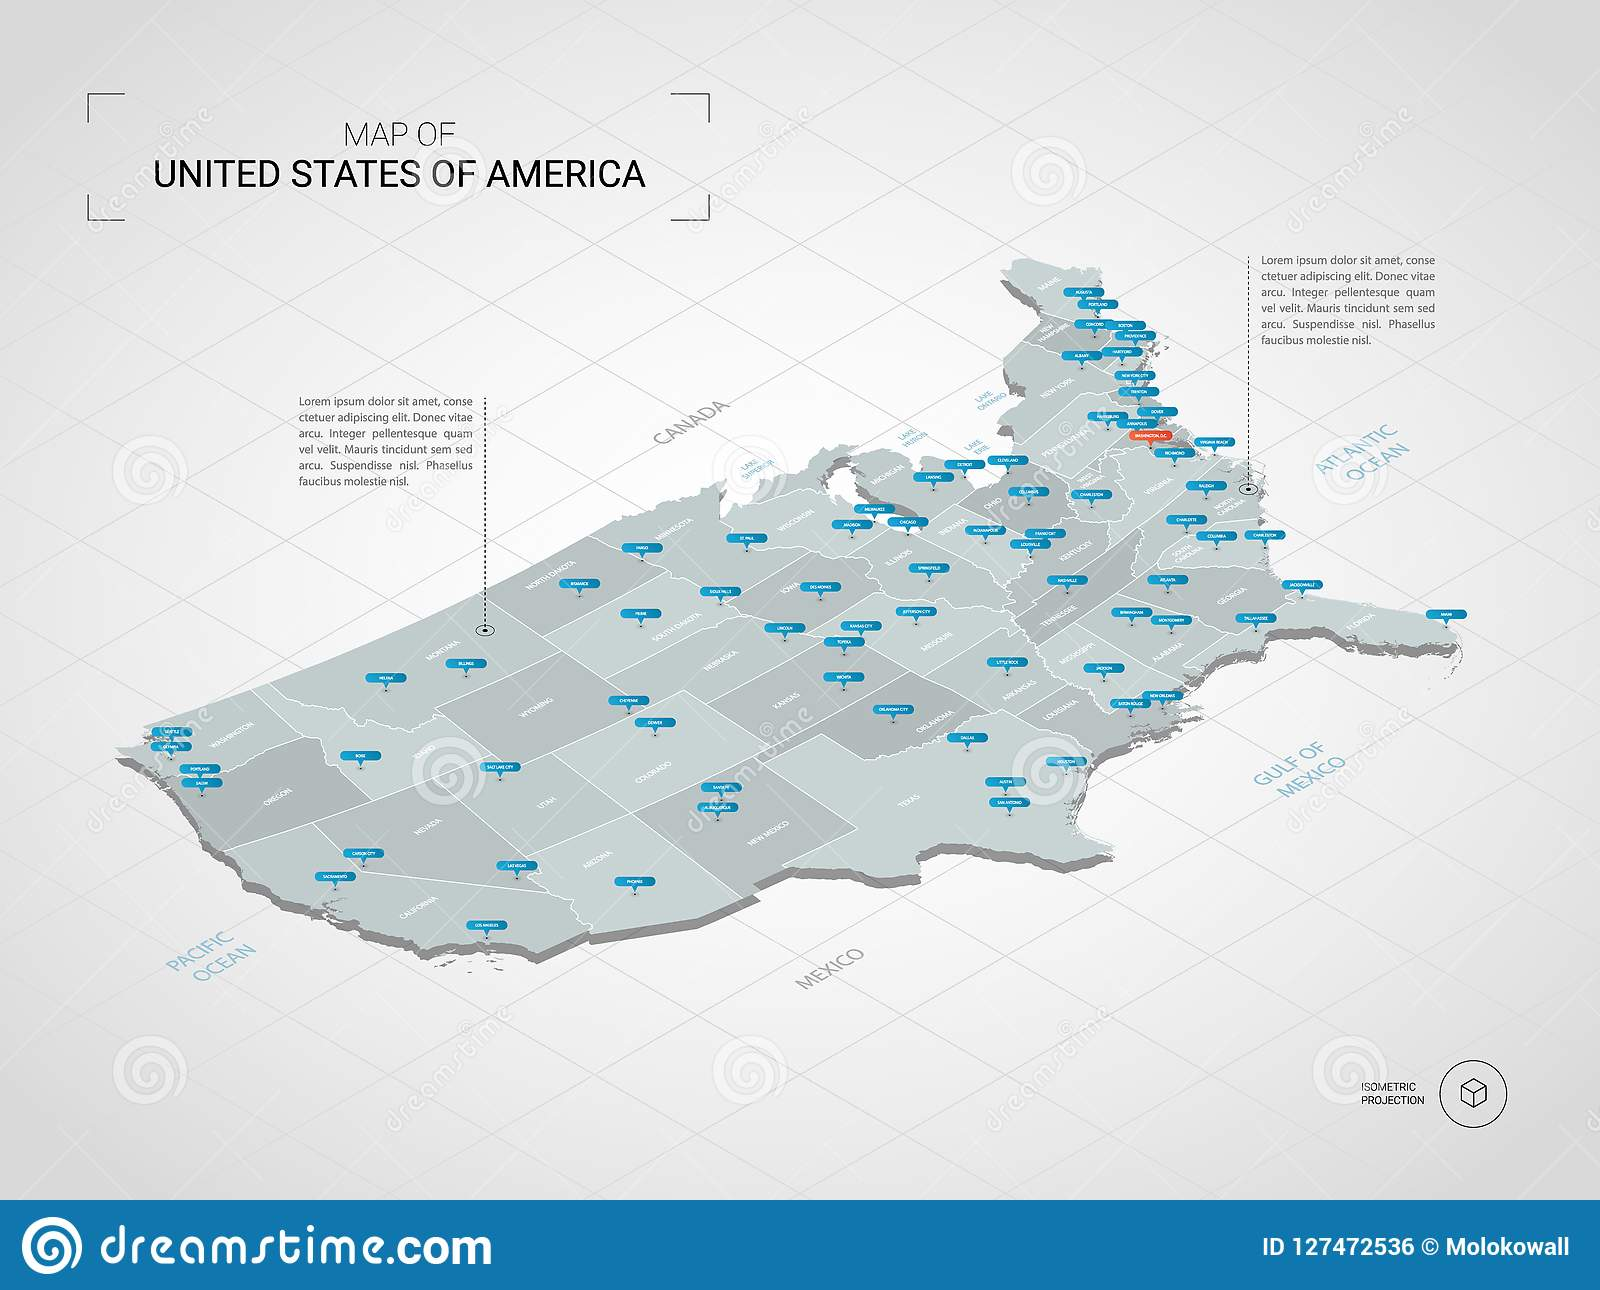 United States Map Of Cities.Isometric United States Of America Map With City Names And Admin